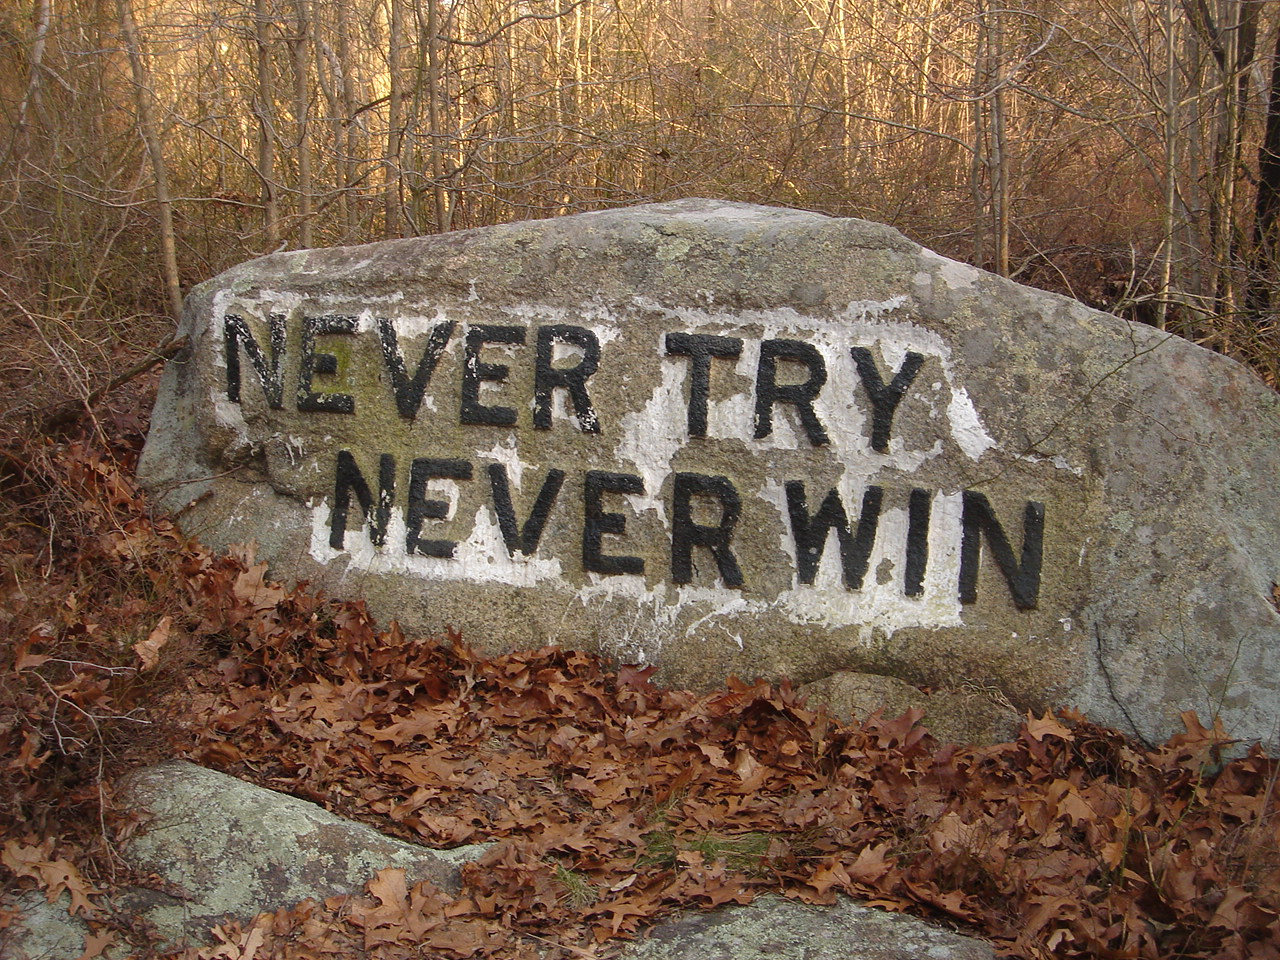 One of Dogtown's famous Babson boulders- inscribed with an inspirational phrase.